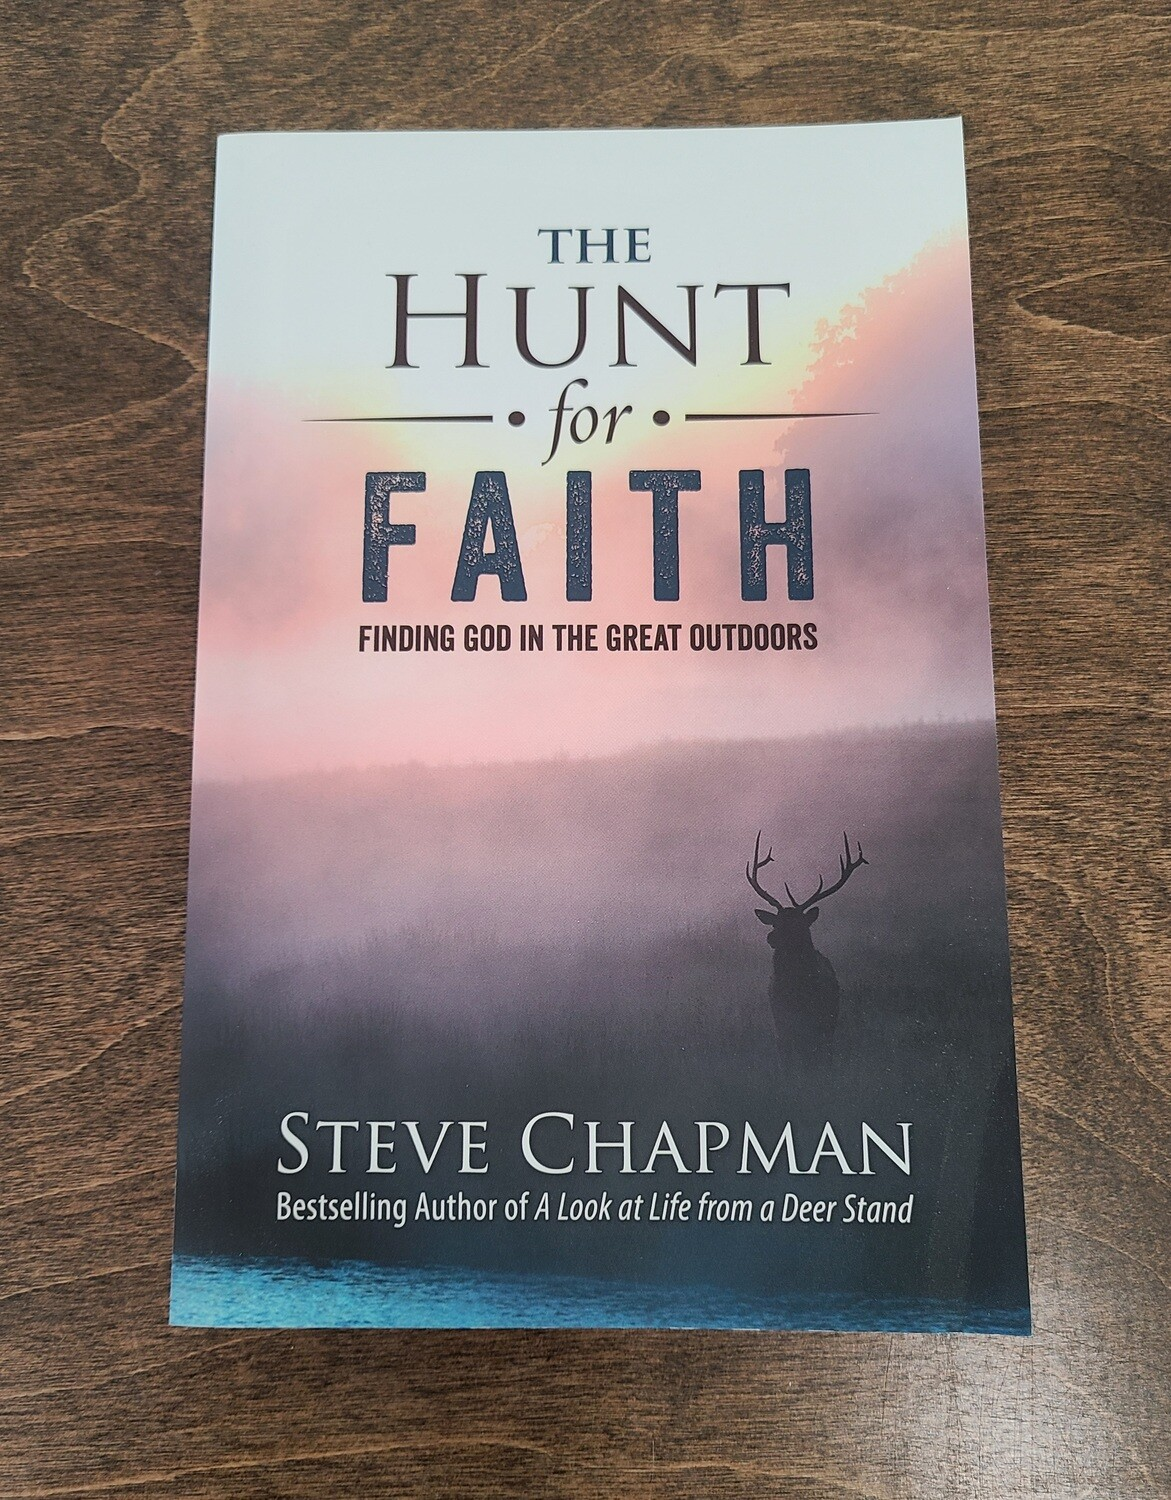 The Hunt for Faith by Steve Chapman